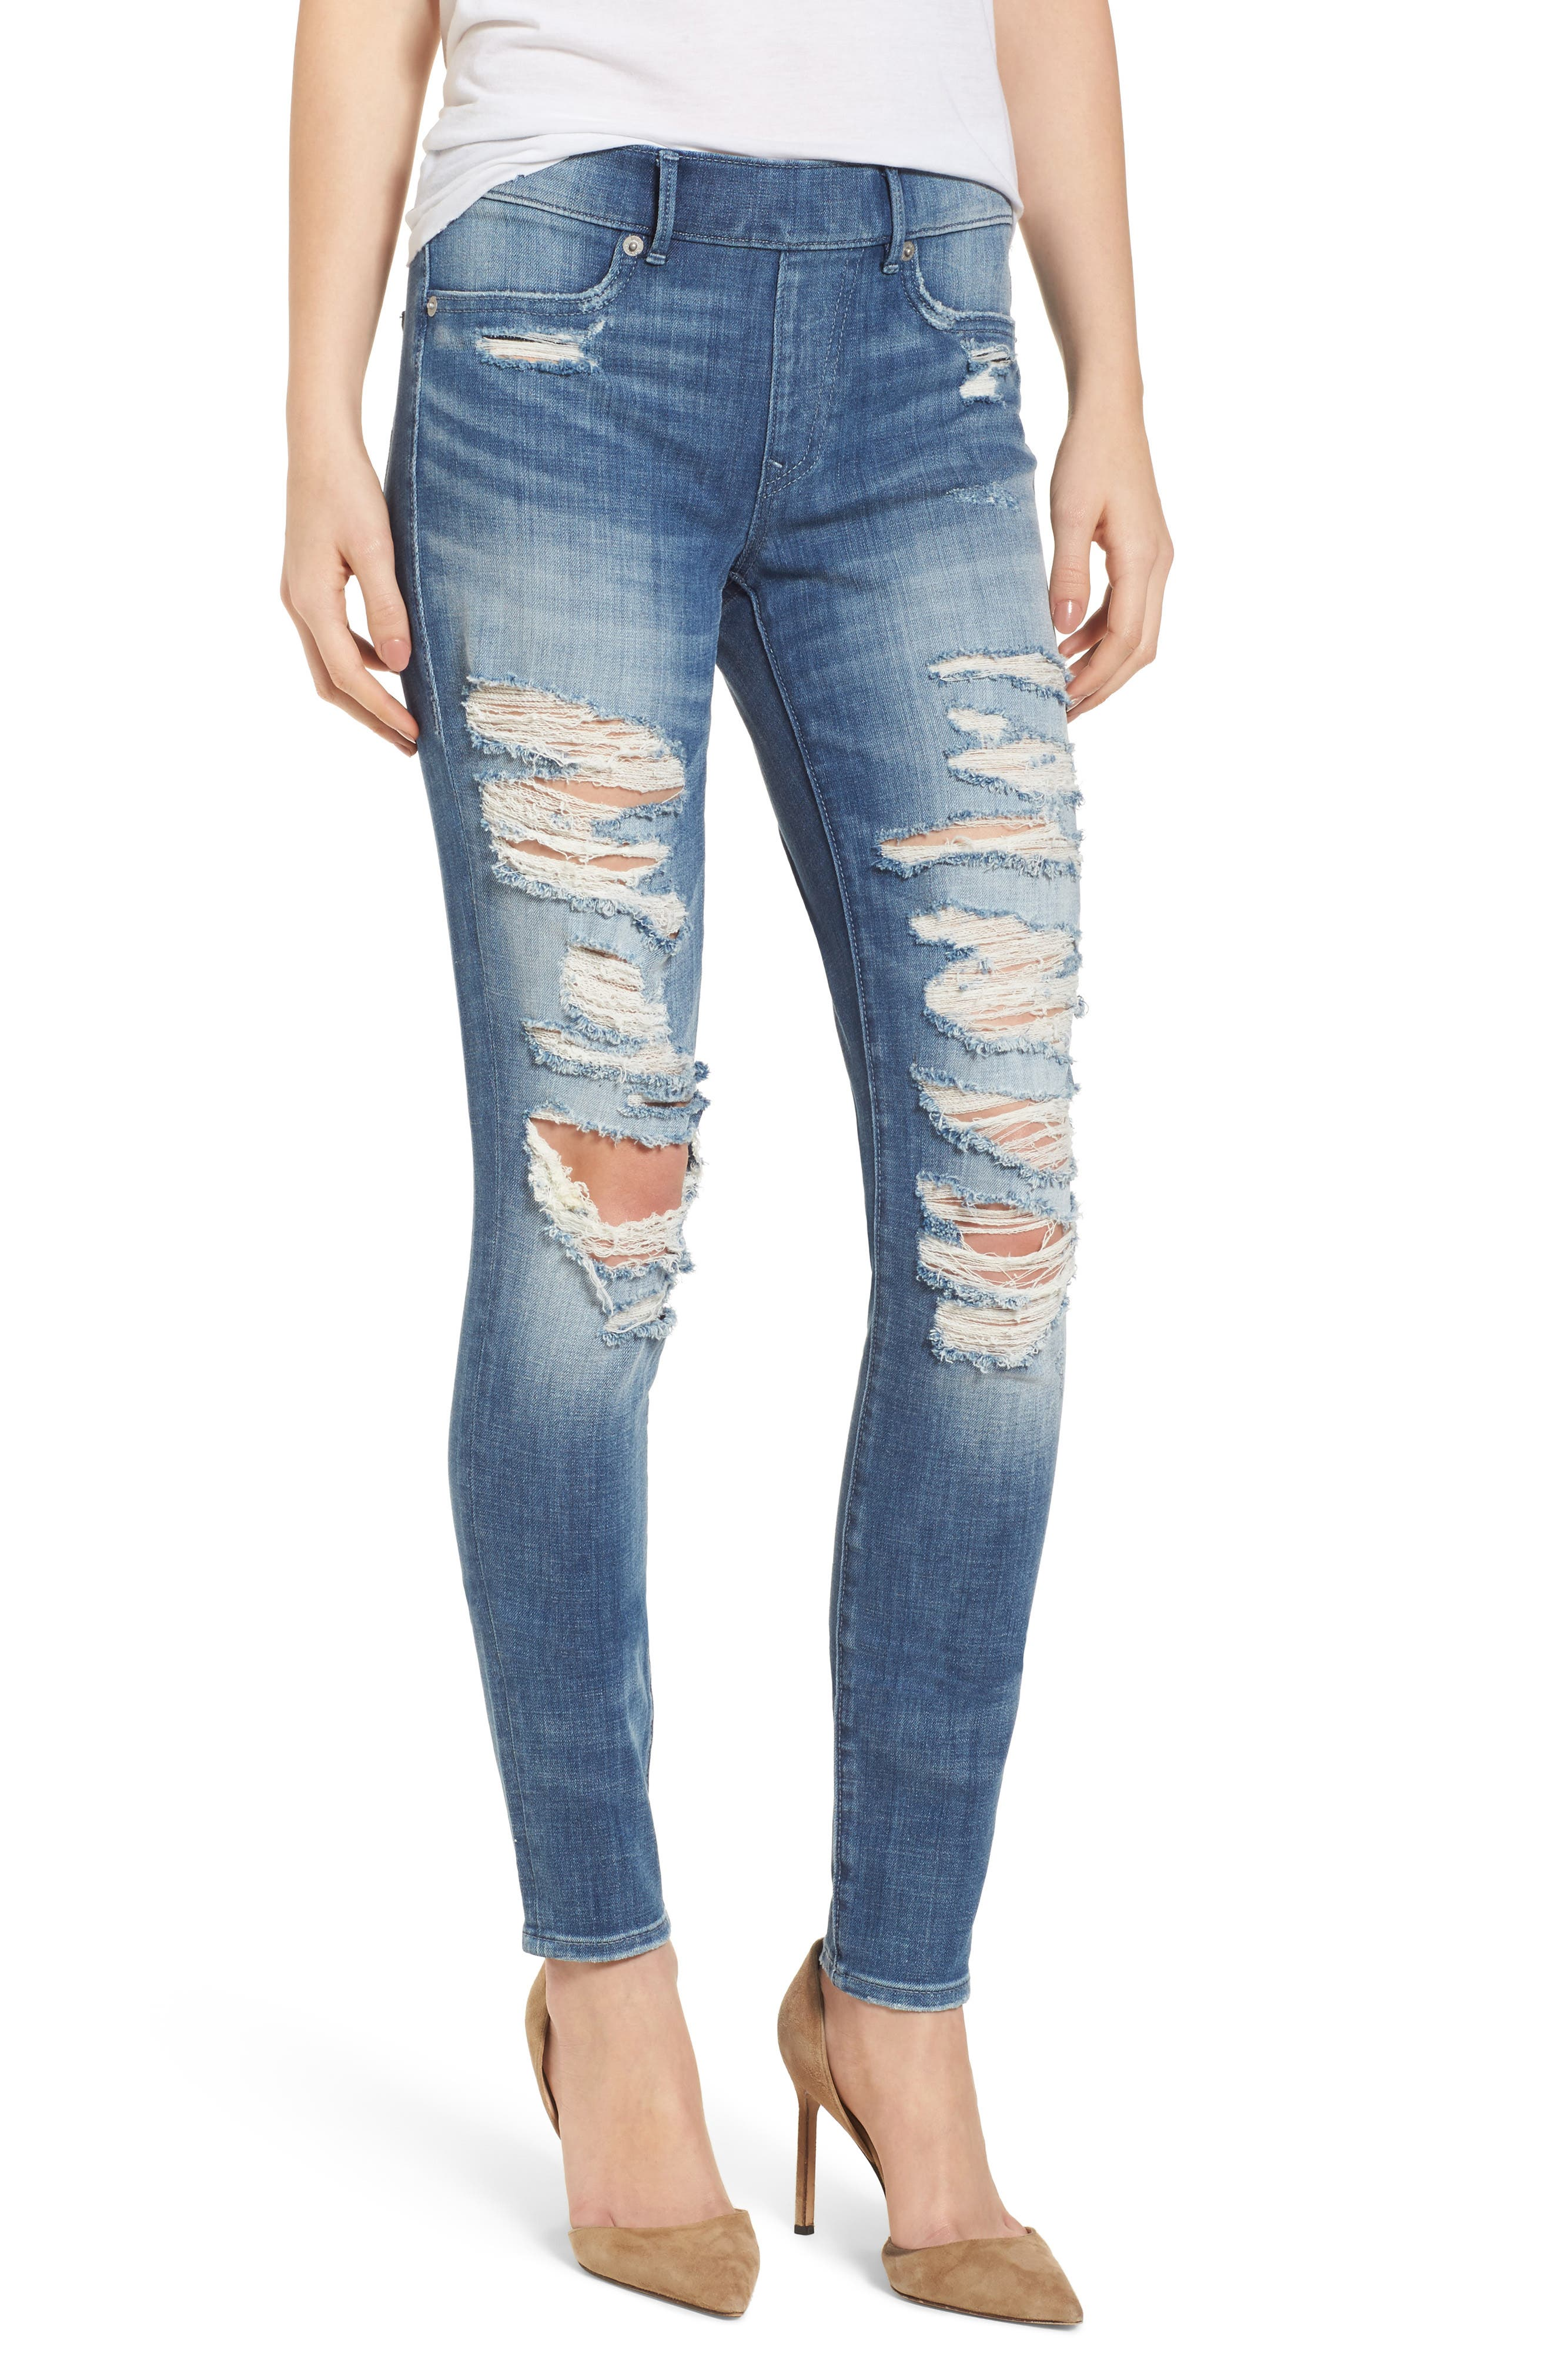 True Religion Brand Jeans Jennie Runaway Legging Jeans (Washed Out Destroy)